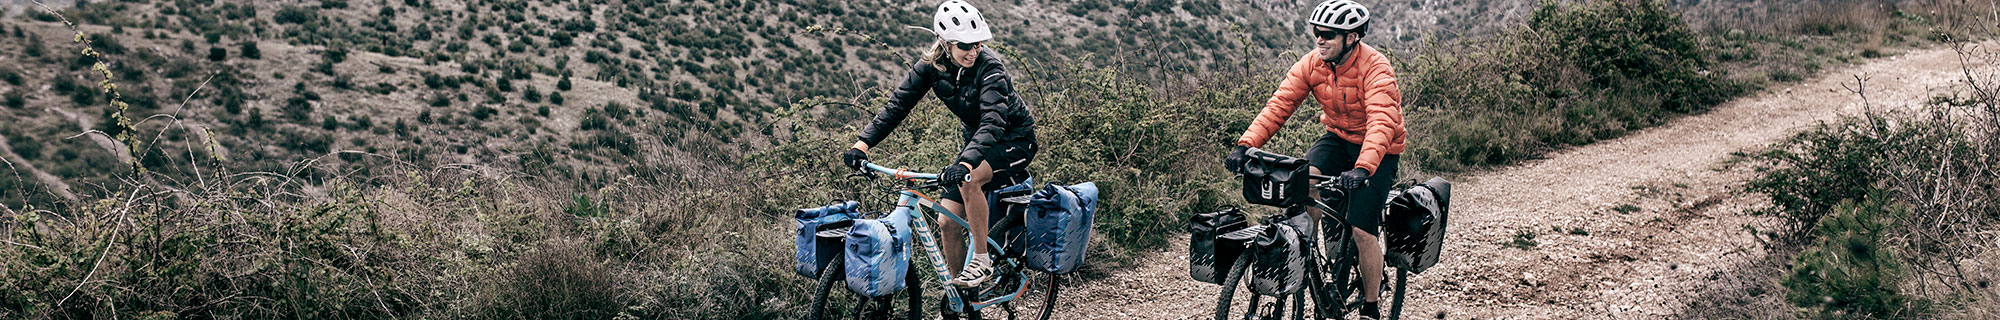 Thule panniers bike bags